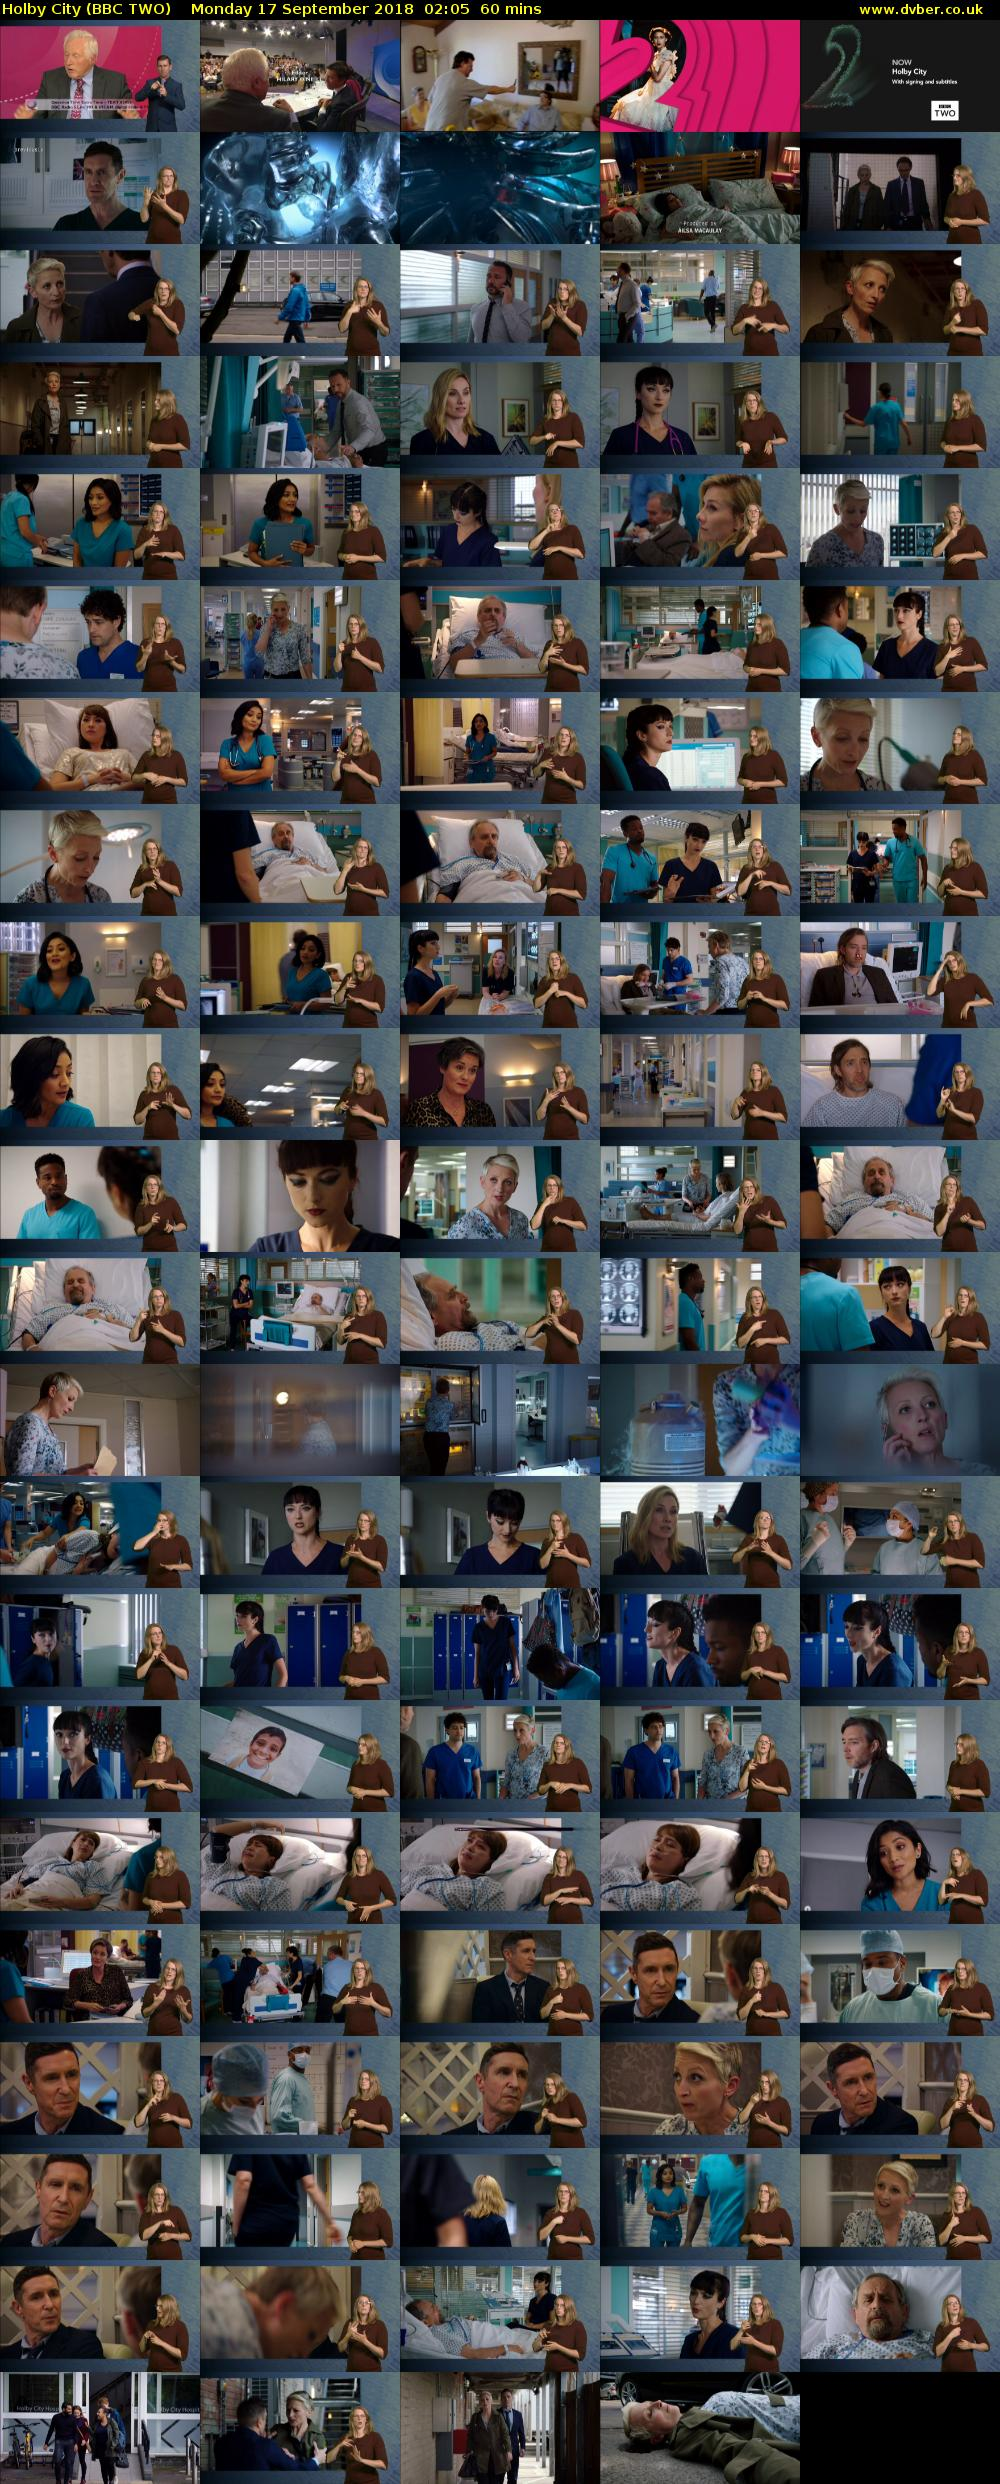 Holby City (BBC TWO) Monday 17 September 2018 02:05 - 03:05